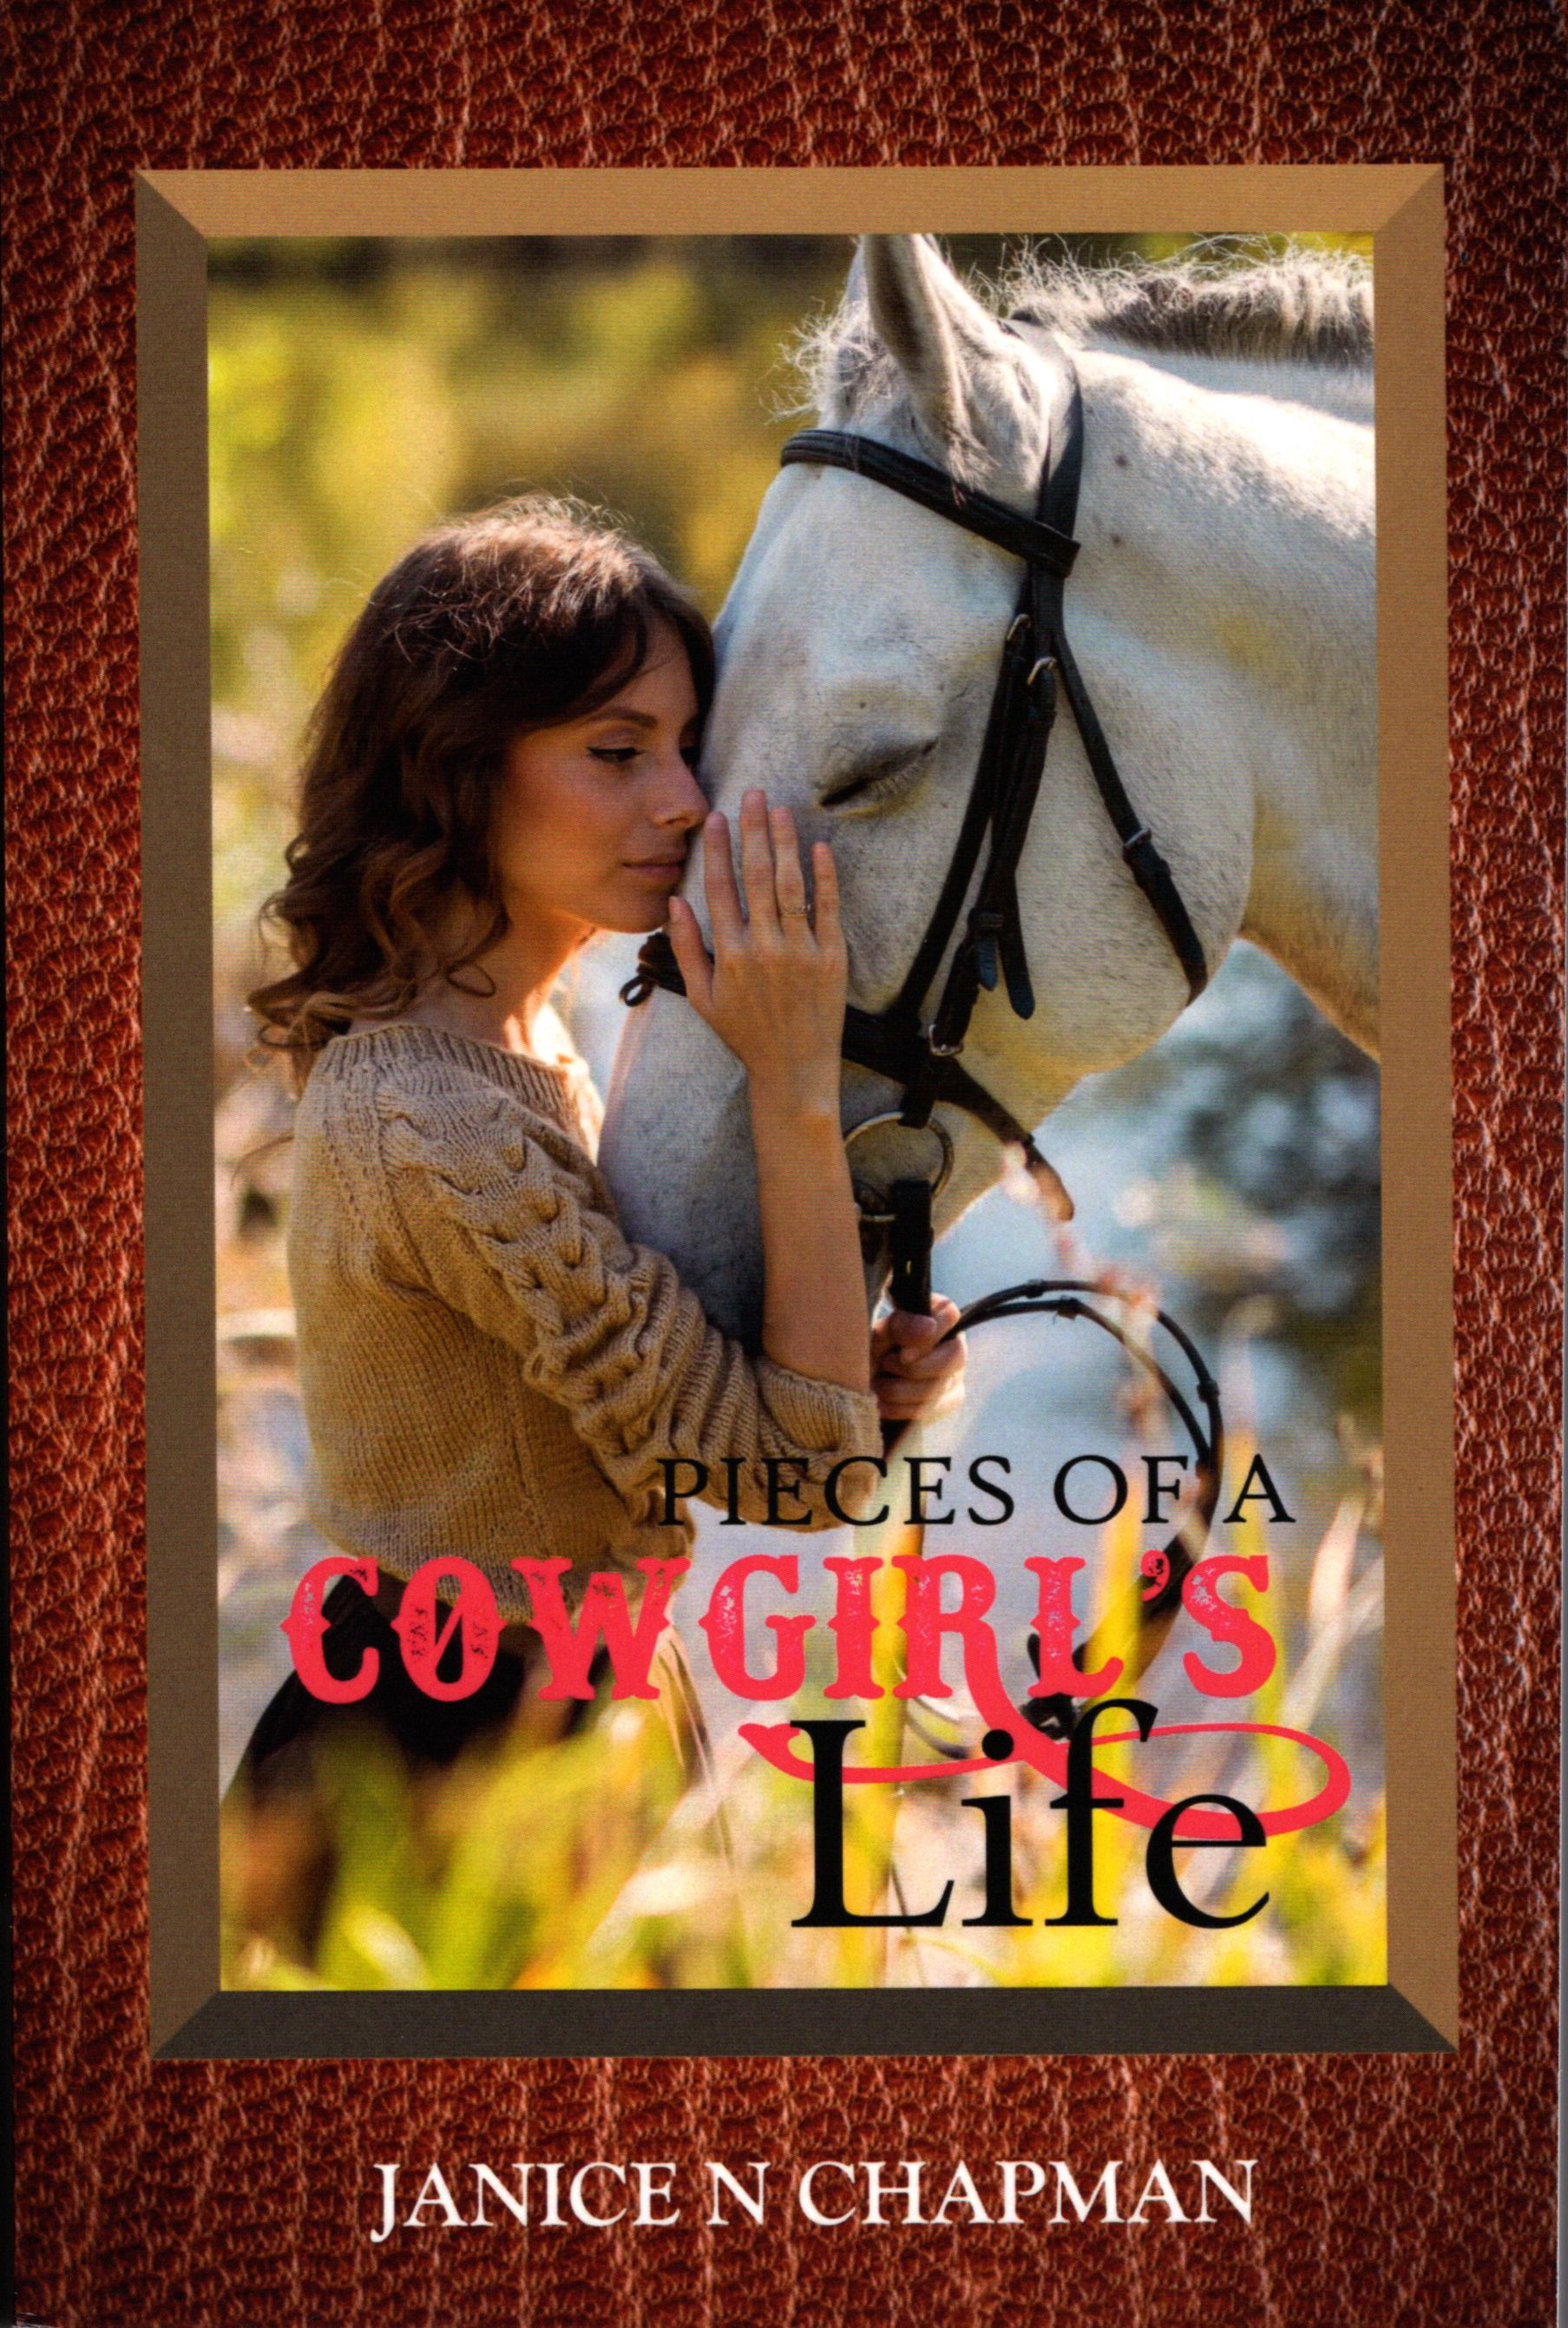 Pieces of a Cowgirl's Life